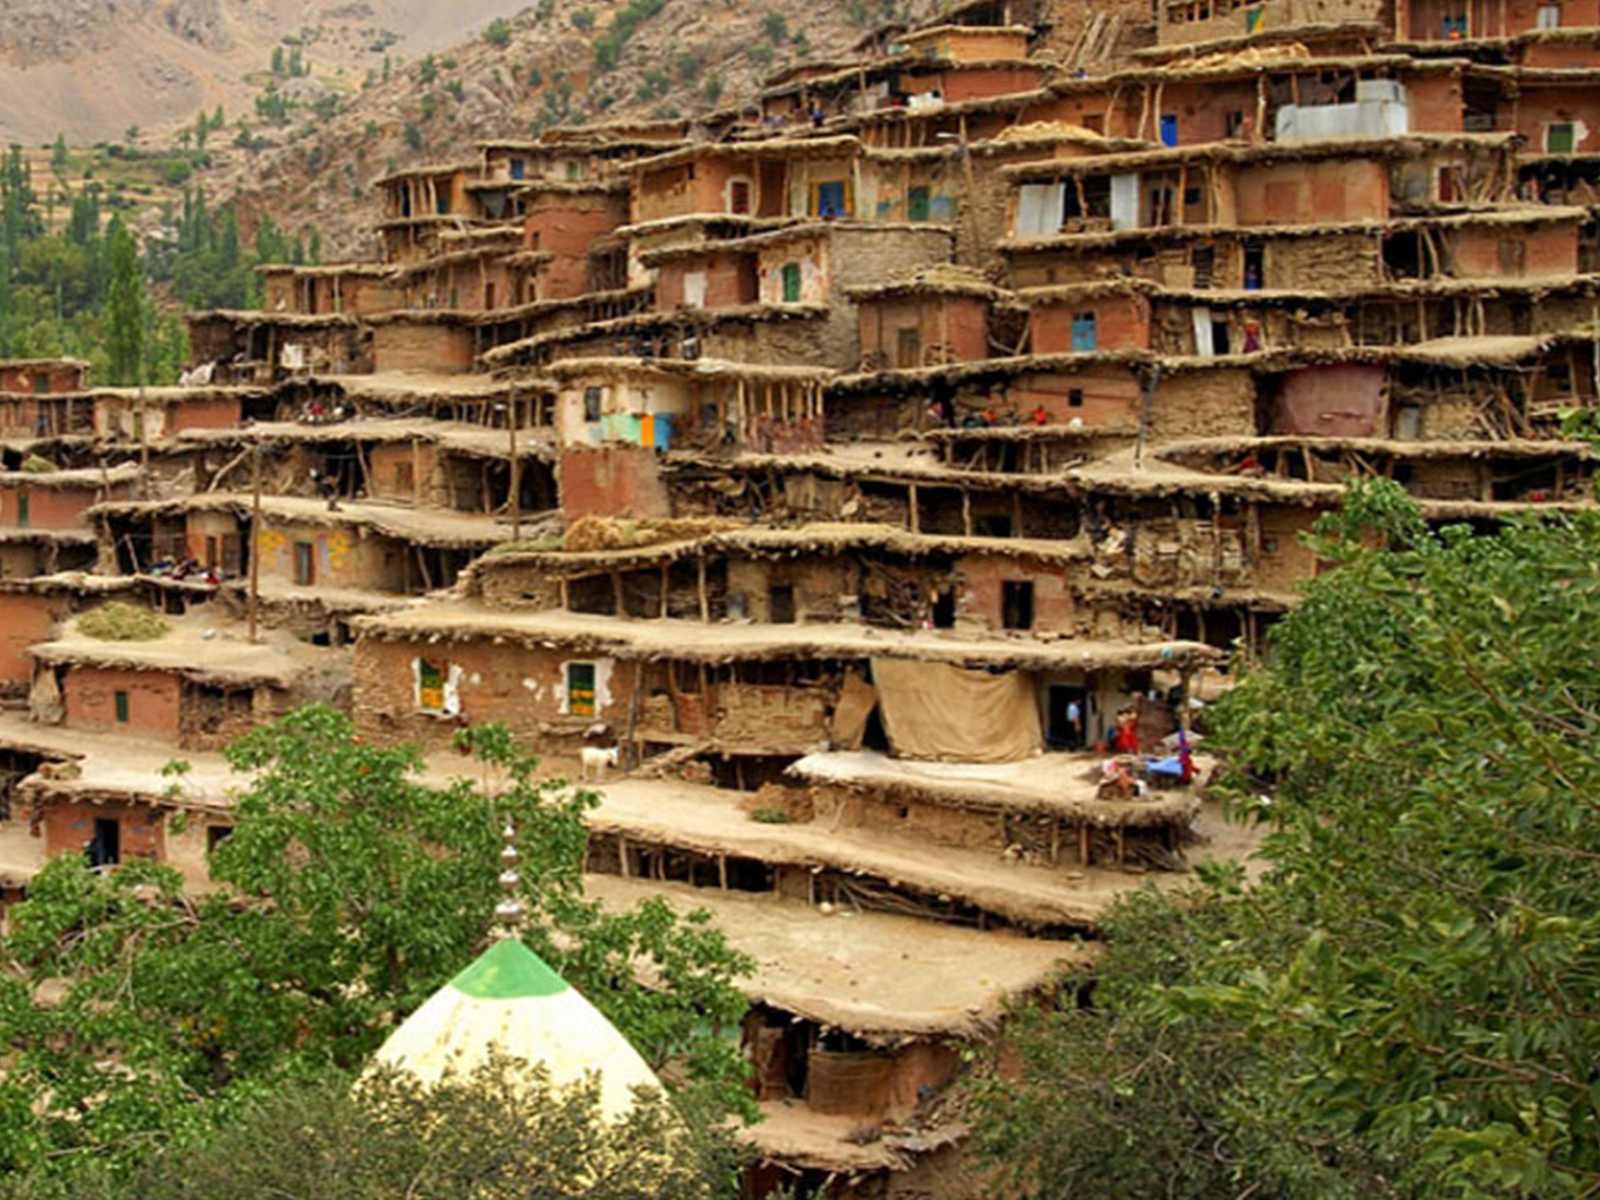 Masouleh is located southwest of Gilan province, 36 km from Fouman.